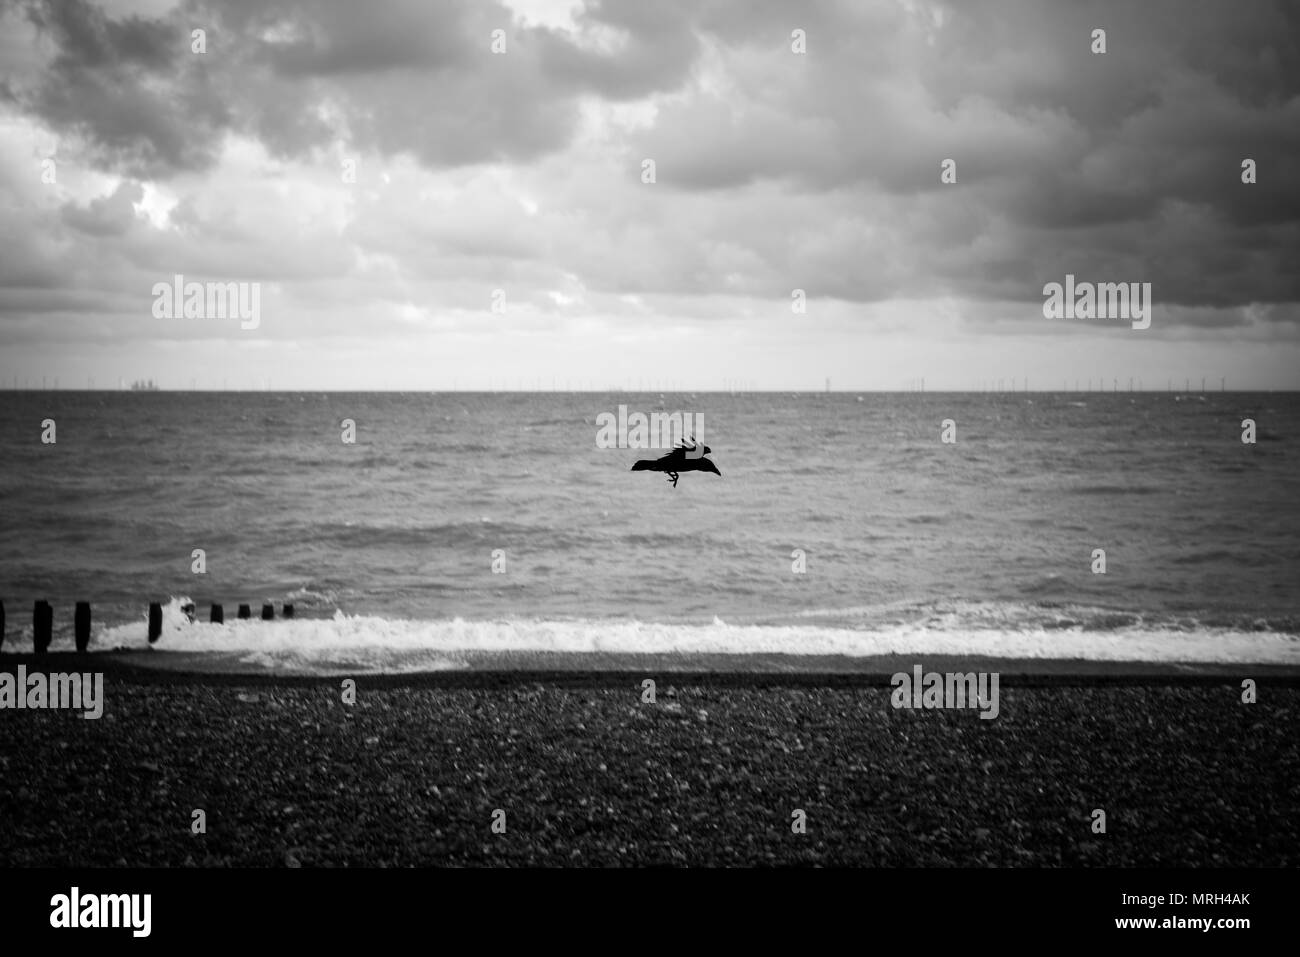 A black bird flying above the beach on a cloudy day. - Stock Image